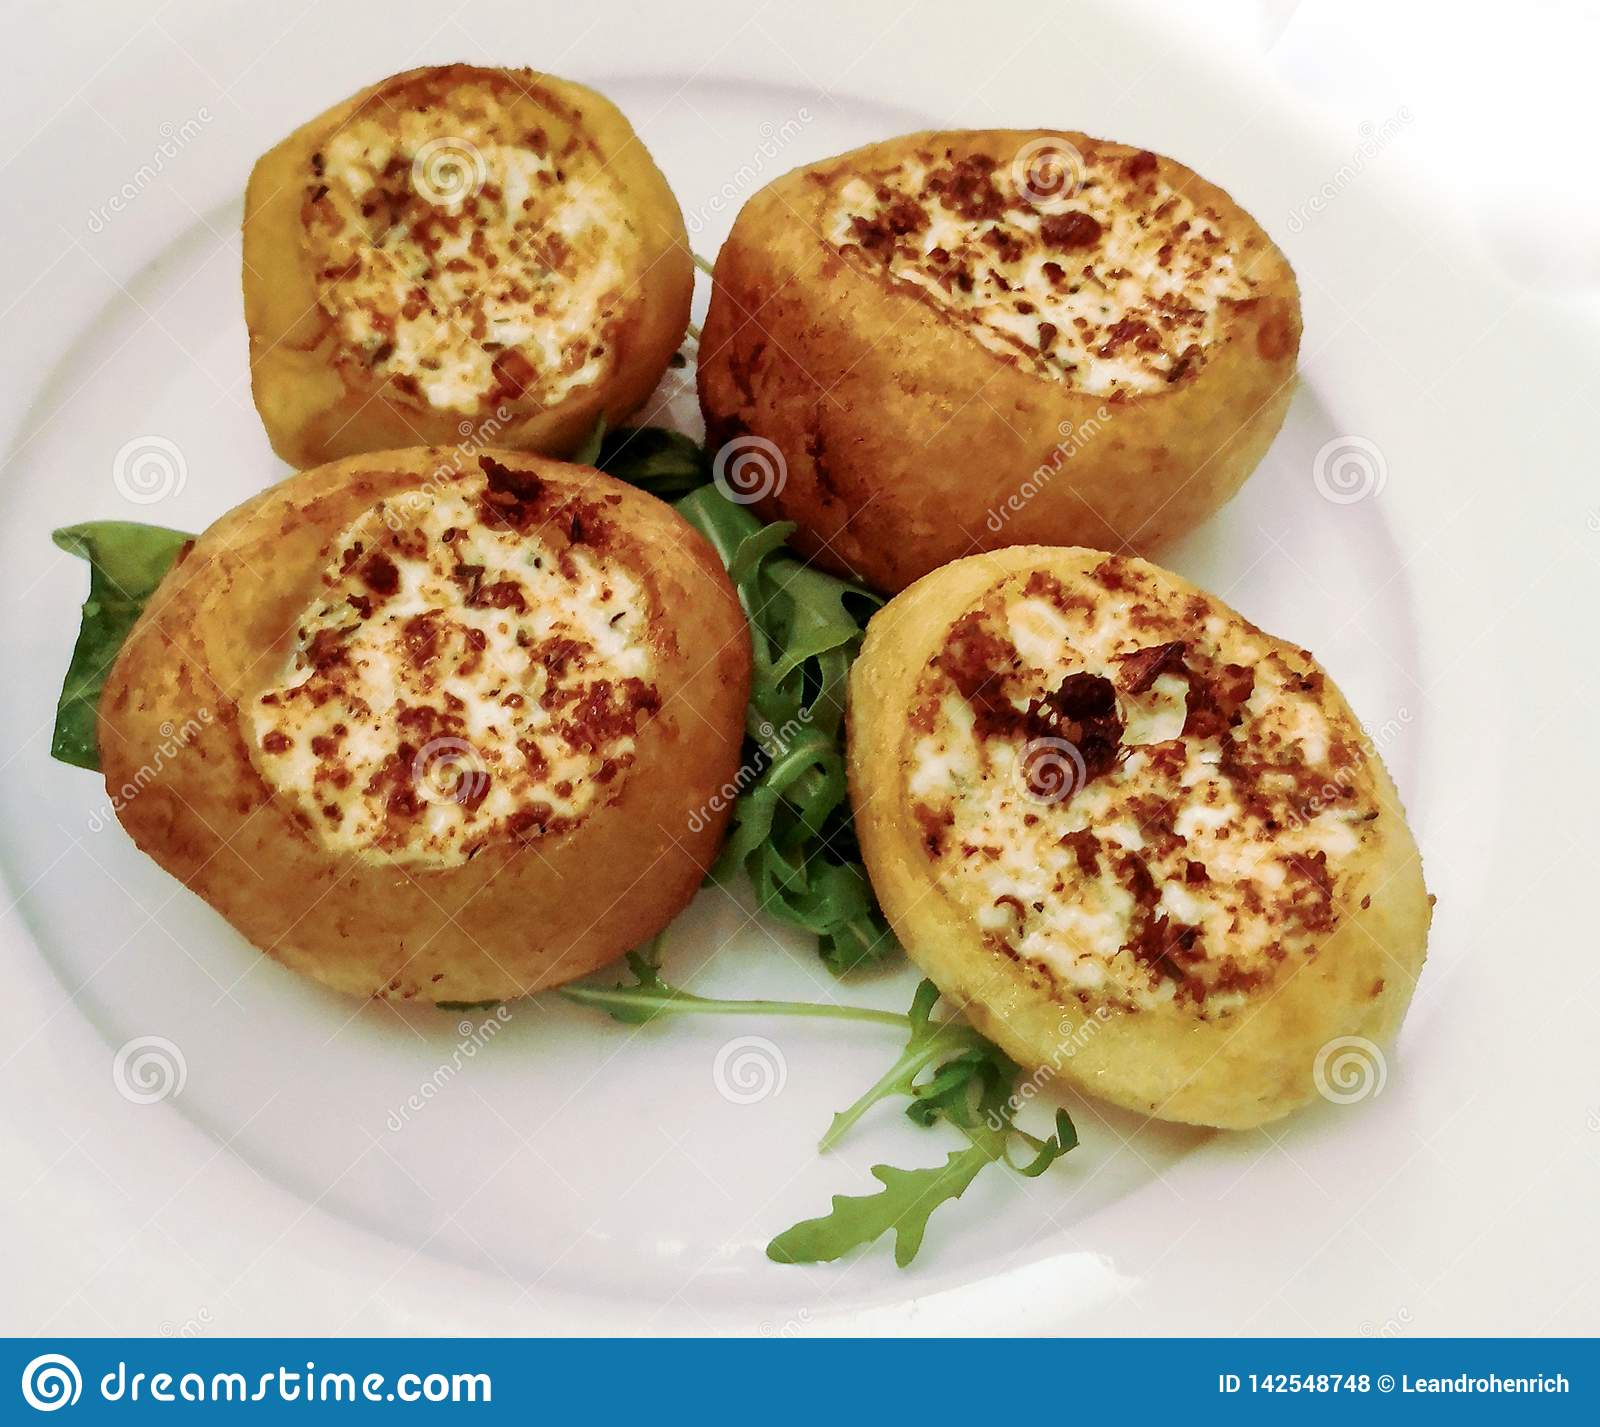 Balkan food: potatoes filled and grilled